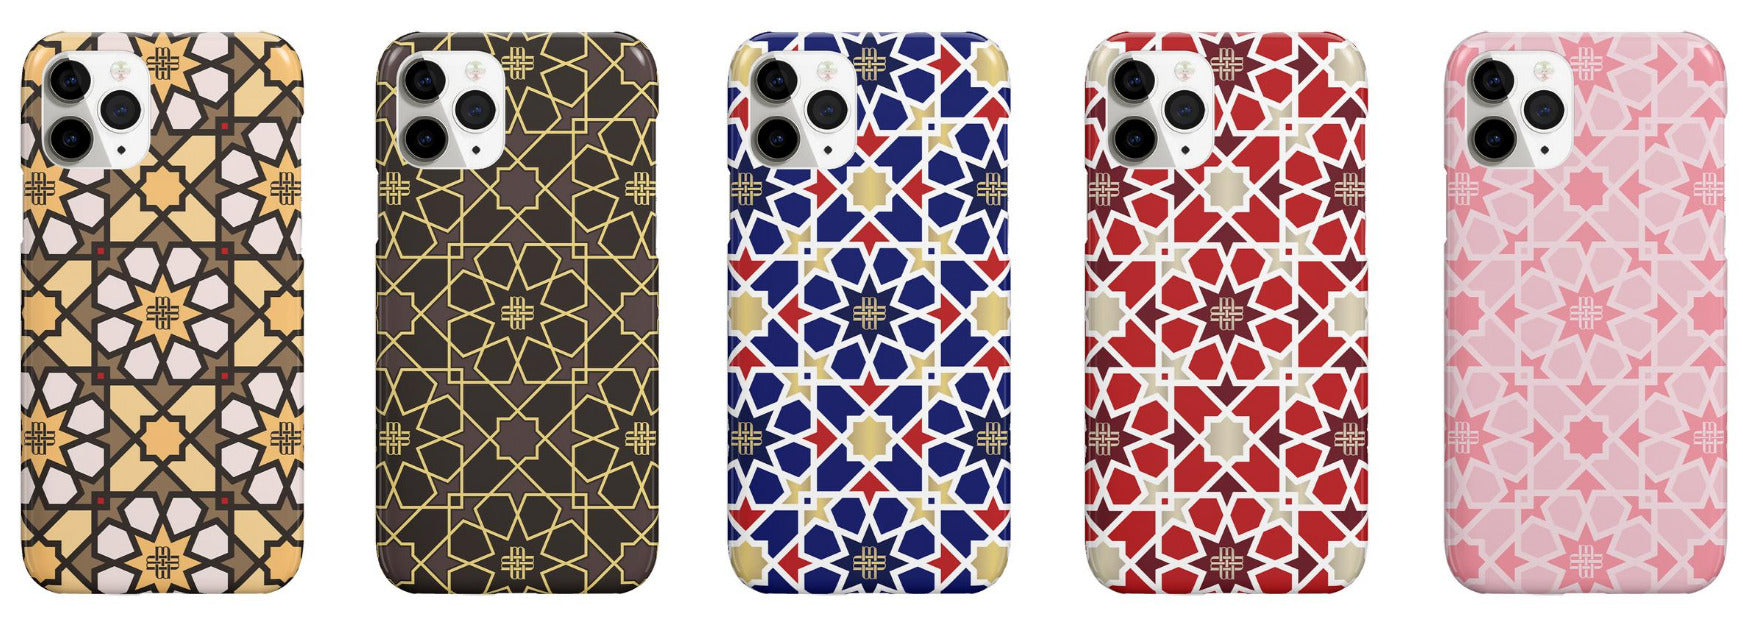 PHONE CASES BY MEQNES